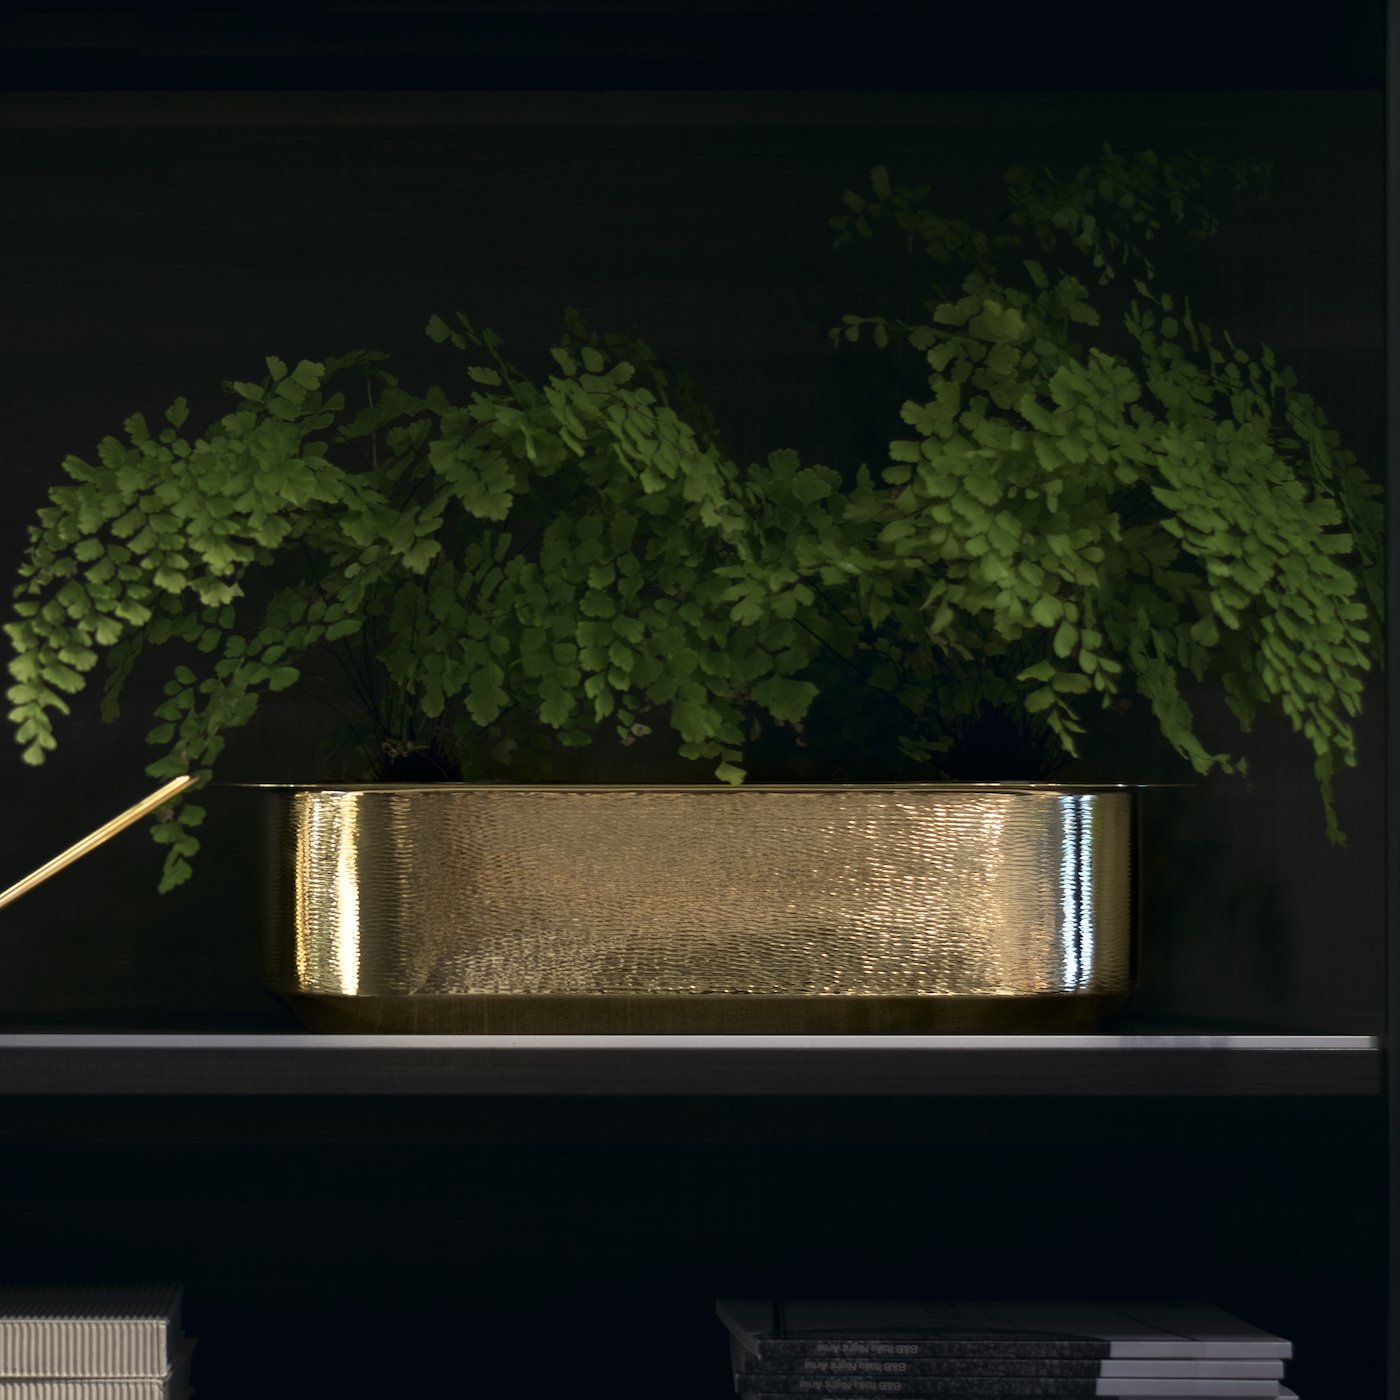 Davanzale Windowsill Cachepot - Metal Windowsill Cachepot entirely made by hand. The polished brass makes it an elegant, one-of-a-kind piece. you can use this watering can indoor and outdoor | Matter of Stuff